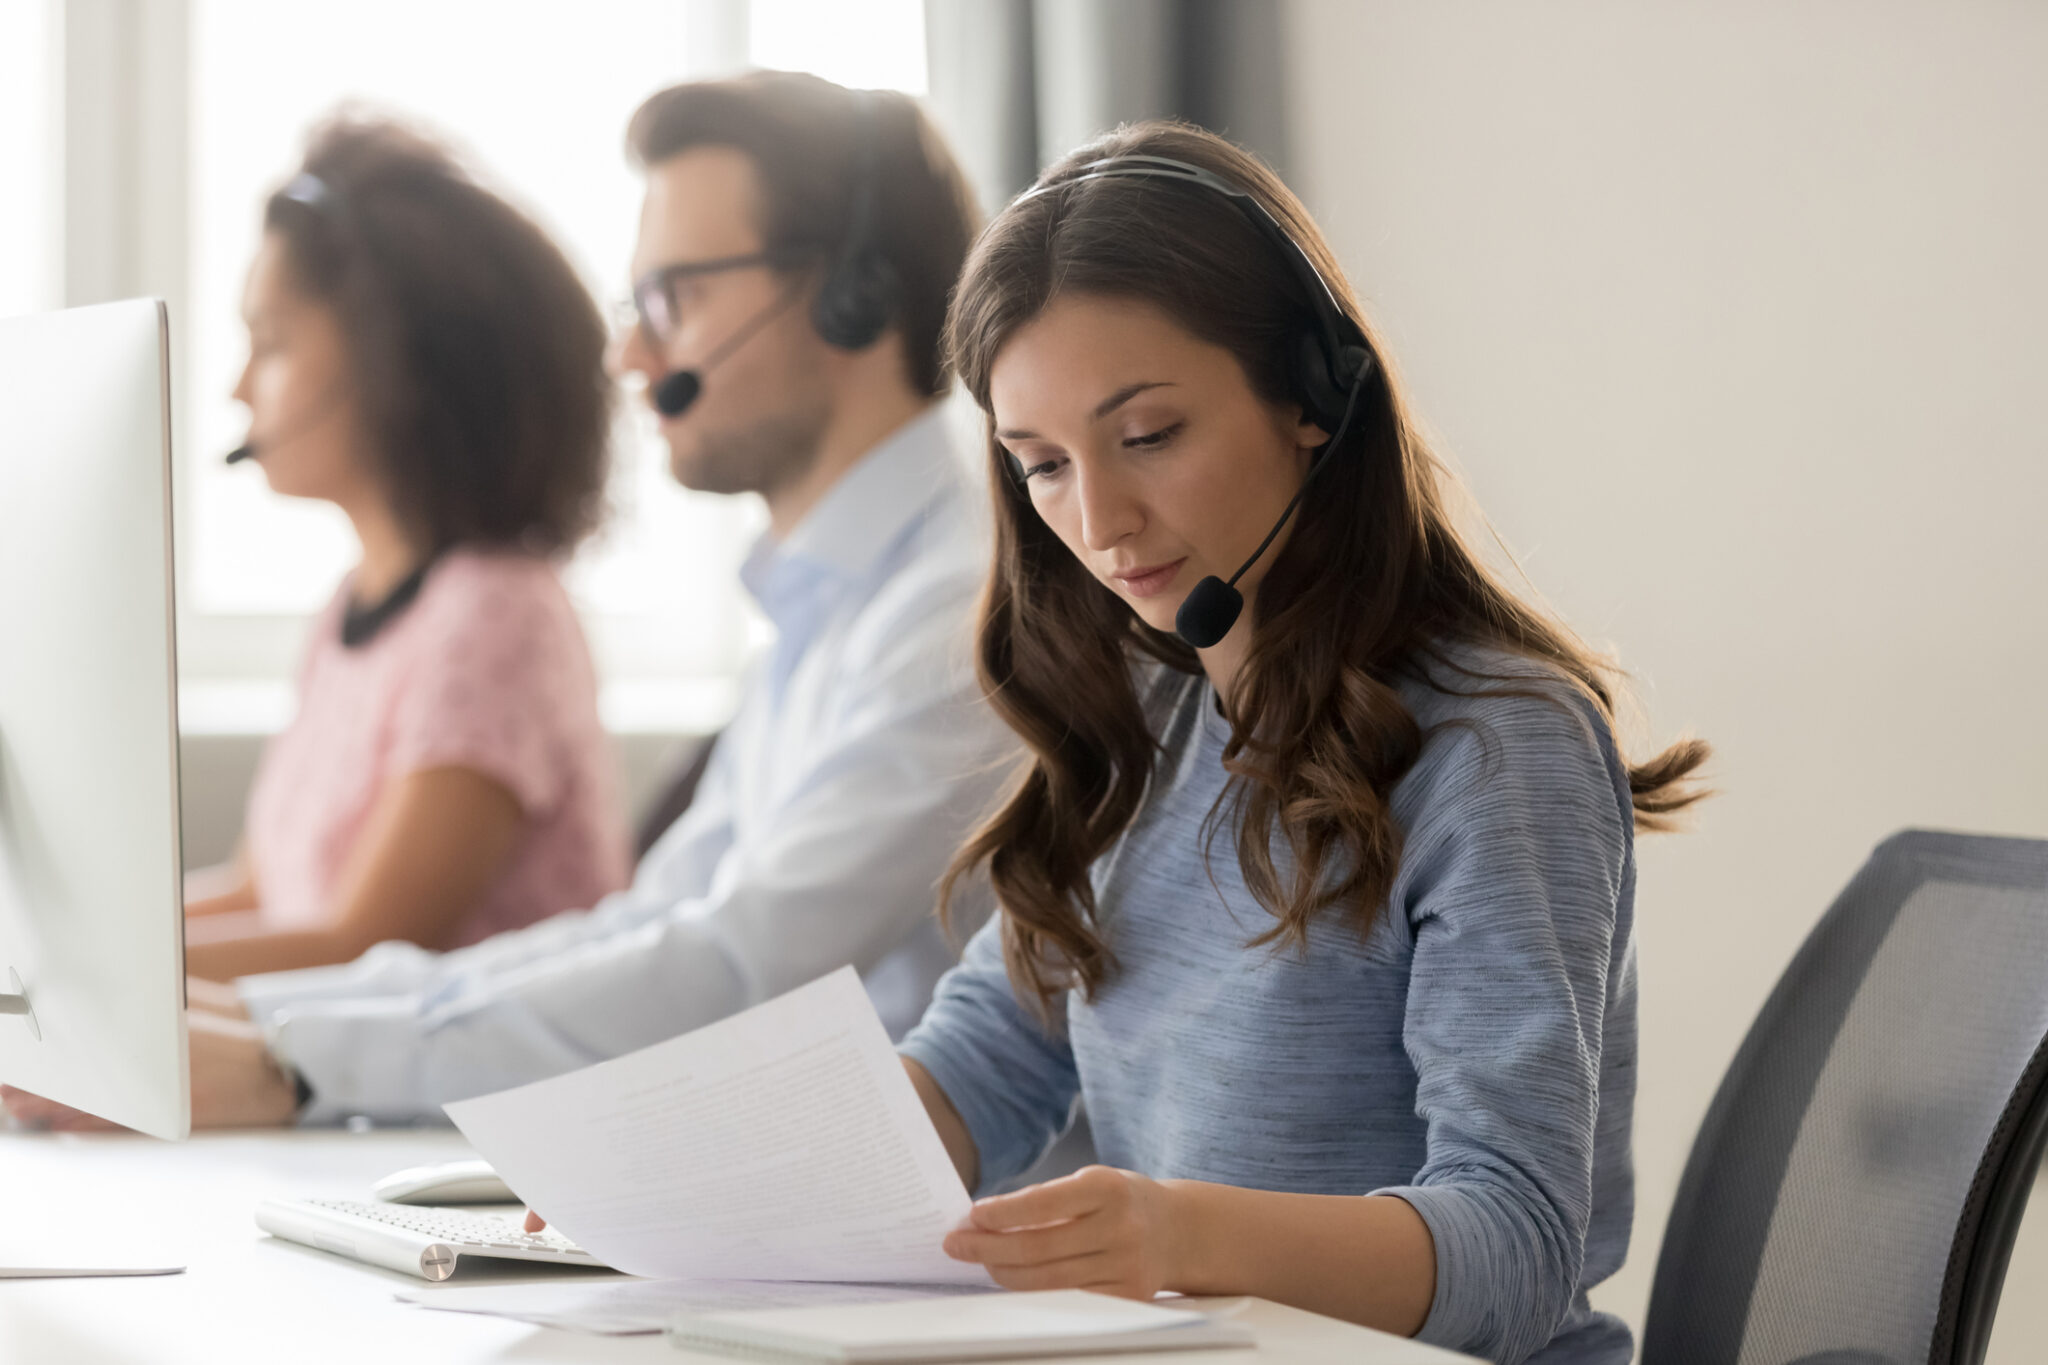 3 Ways A Professional Answering Service Can Address Issues Before They Occur